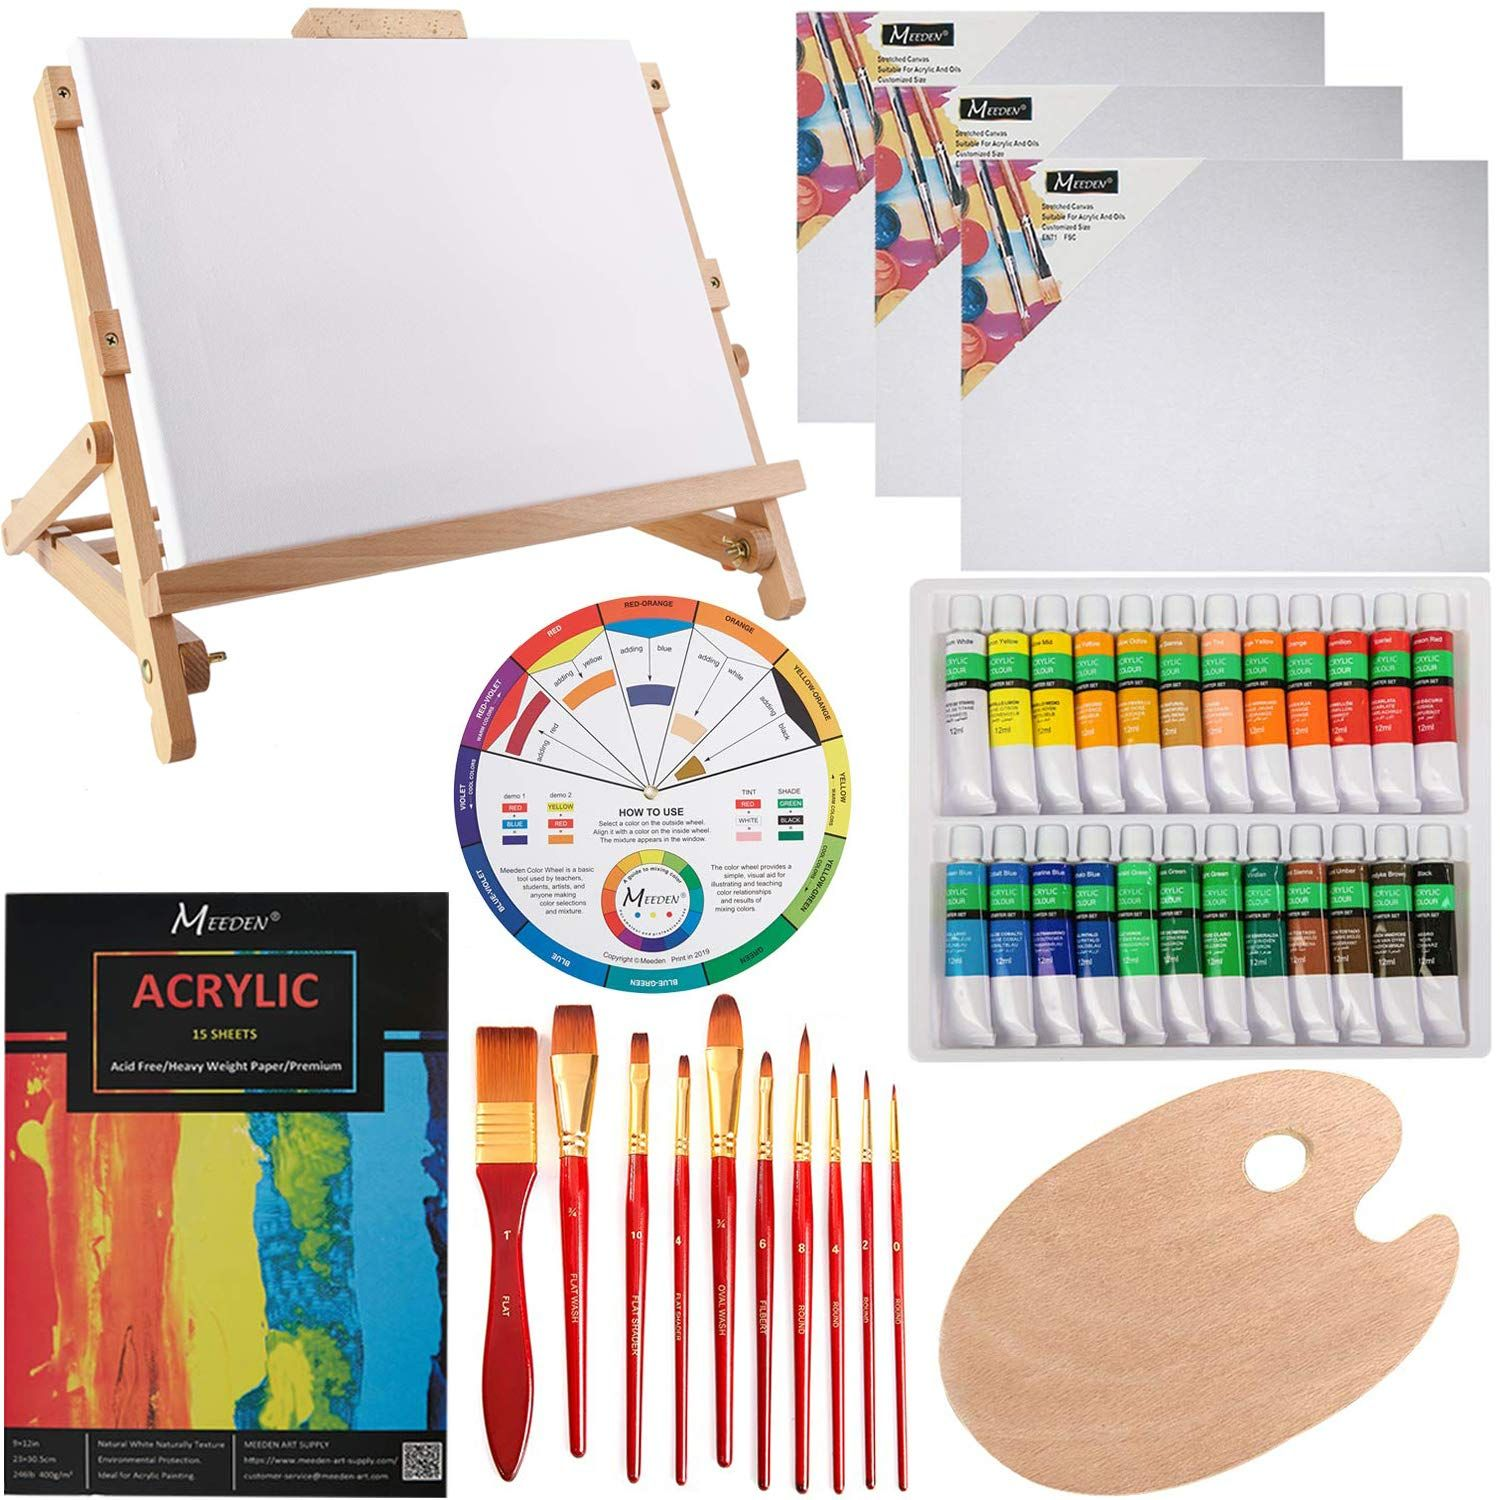 Meeden 42 pcs acrylic painting set with wood table easel